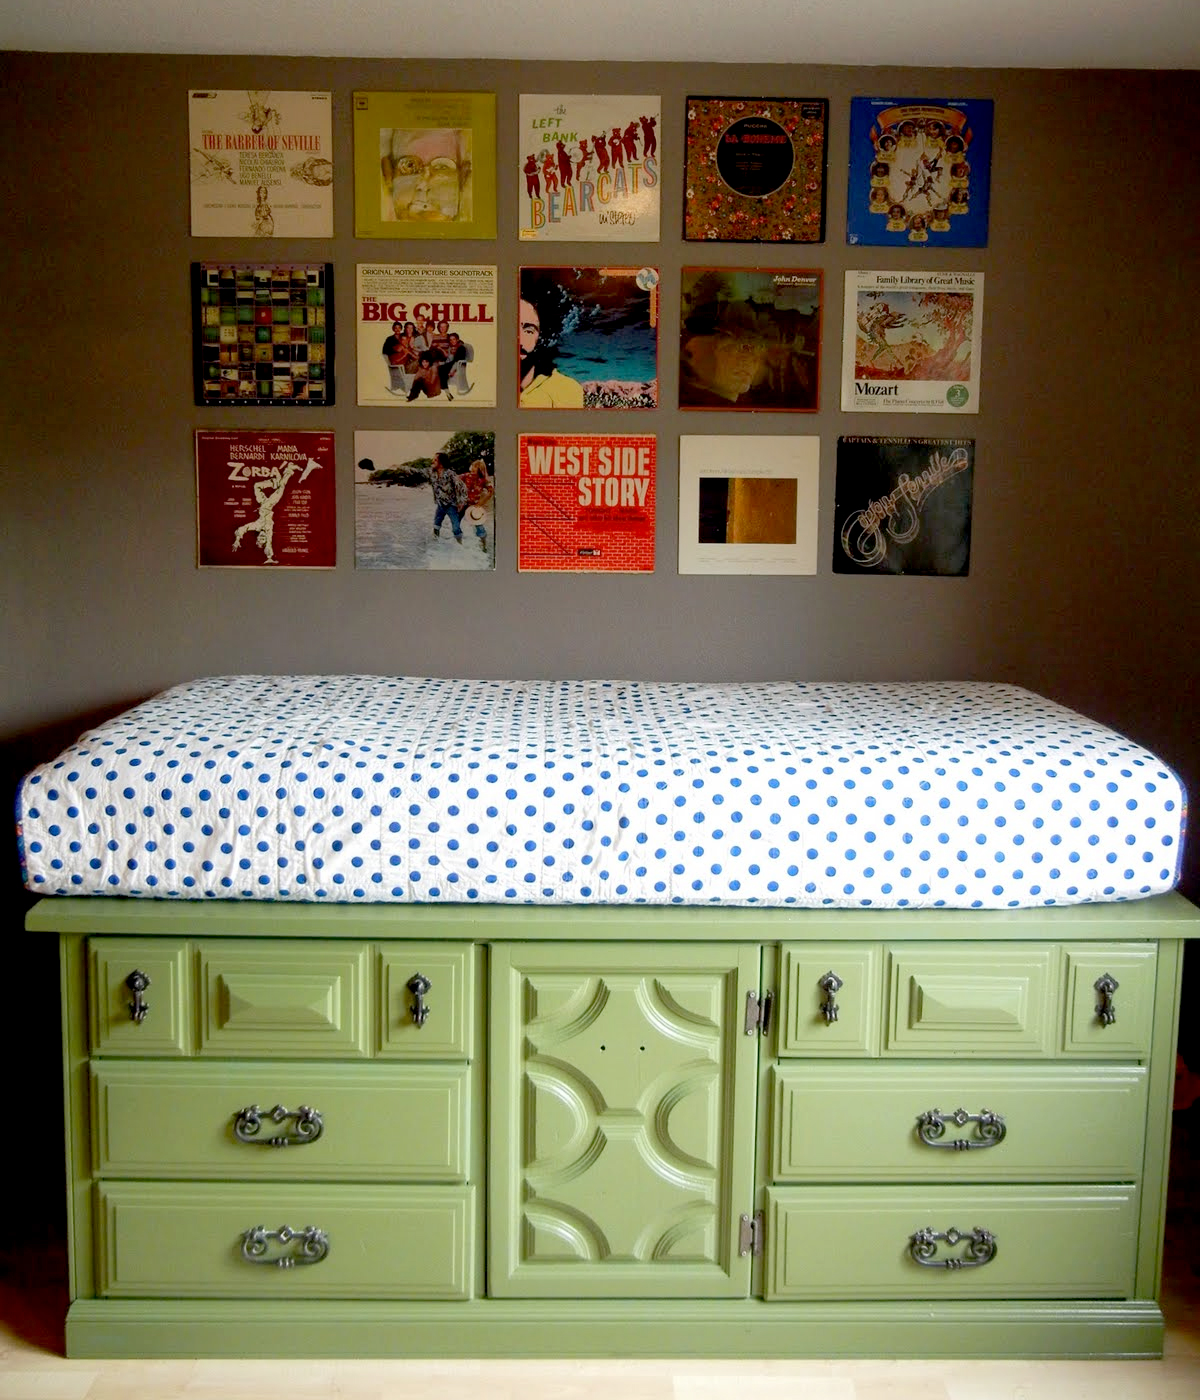 DIY Storage Beds to Add Extra Space and Organization to Your Home